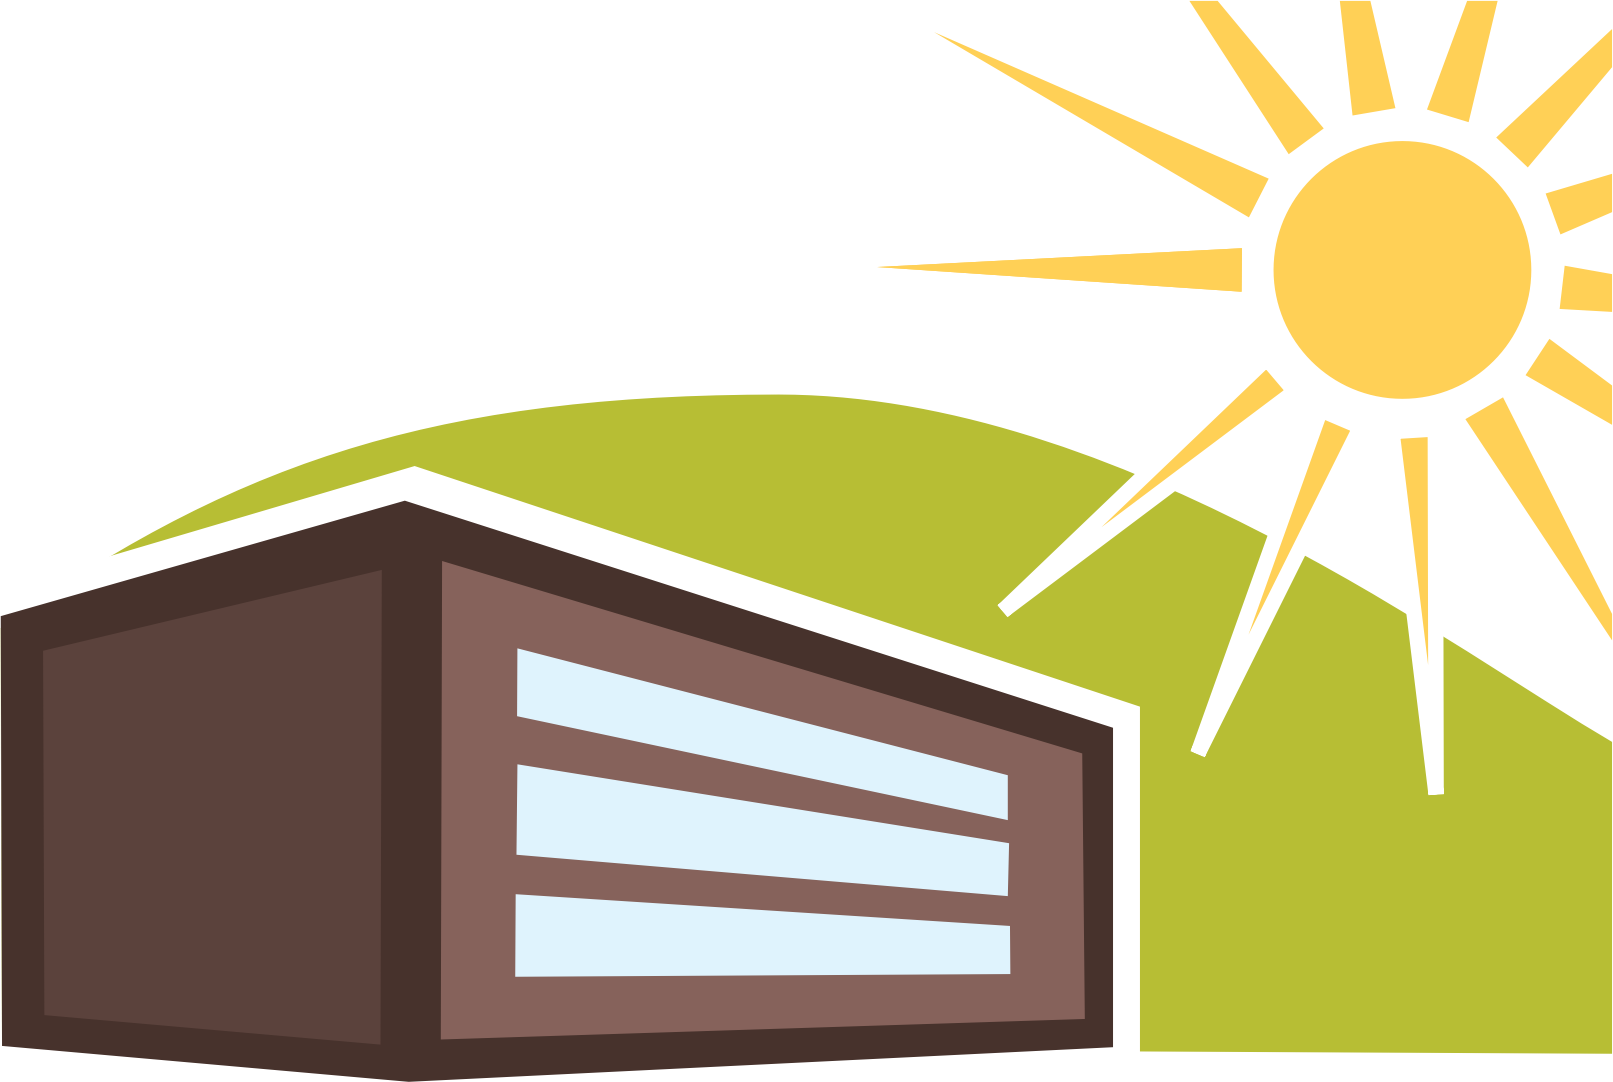 House big image png. Sunny clipart woman